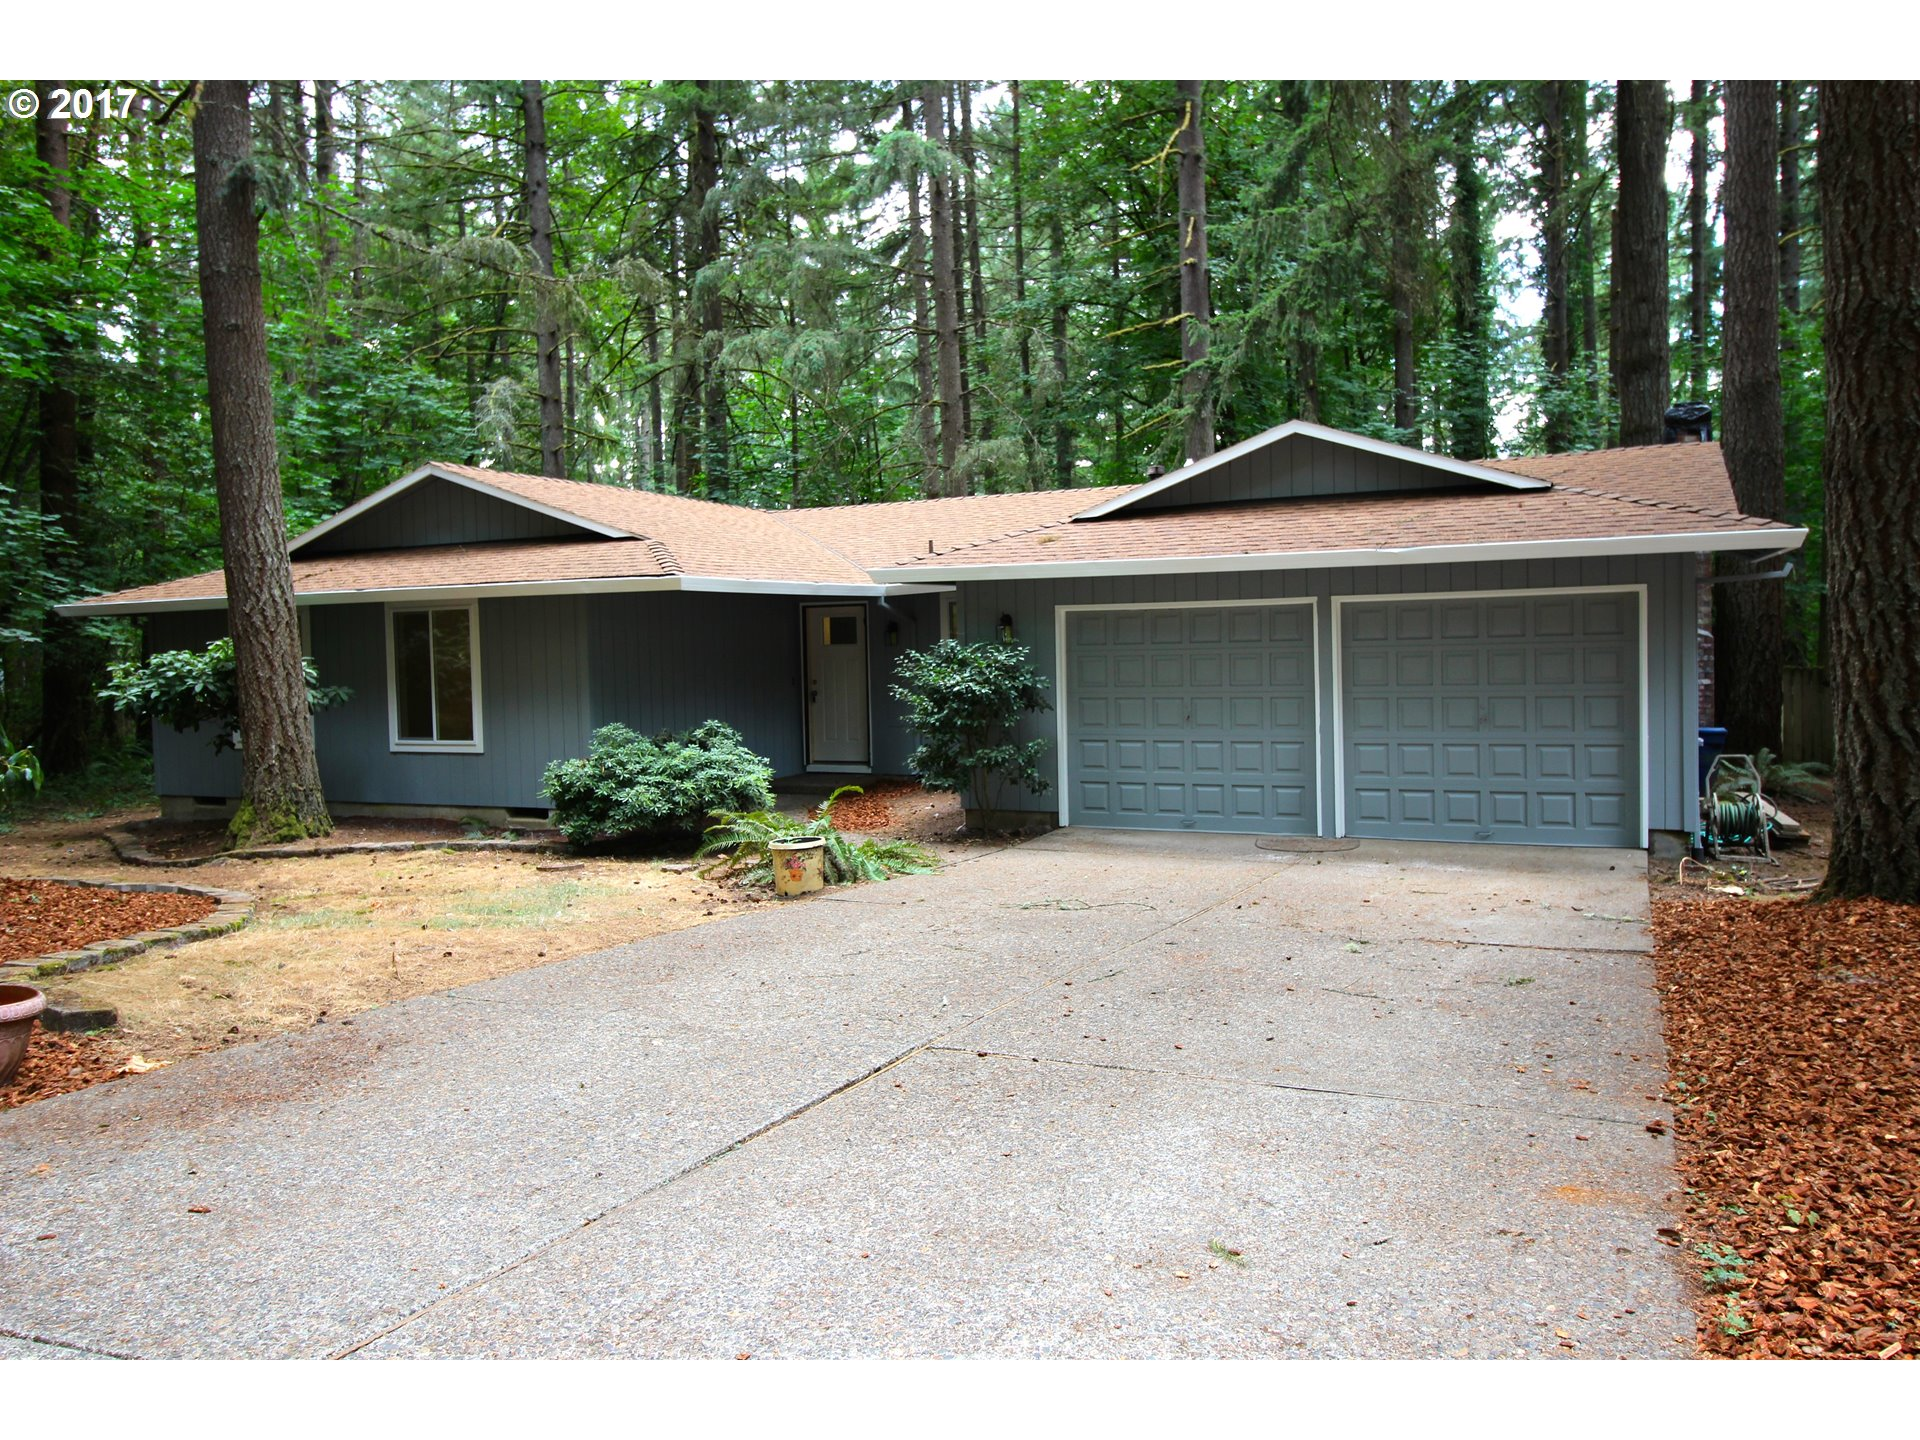 21125 S CASCA BERRY CT, Oregon City, OR 97045